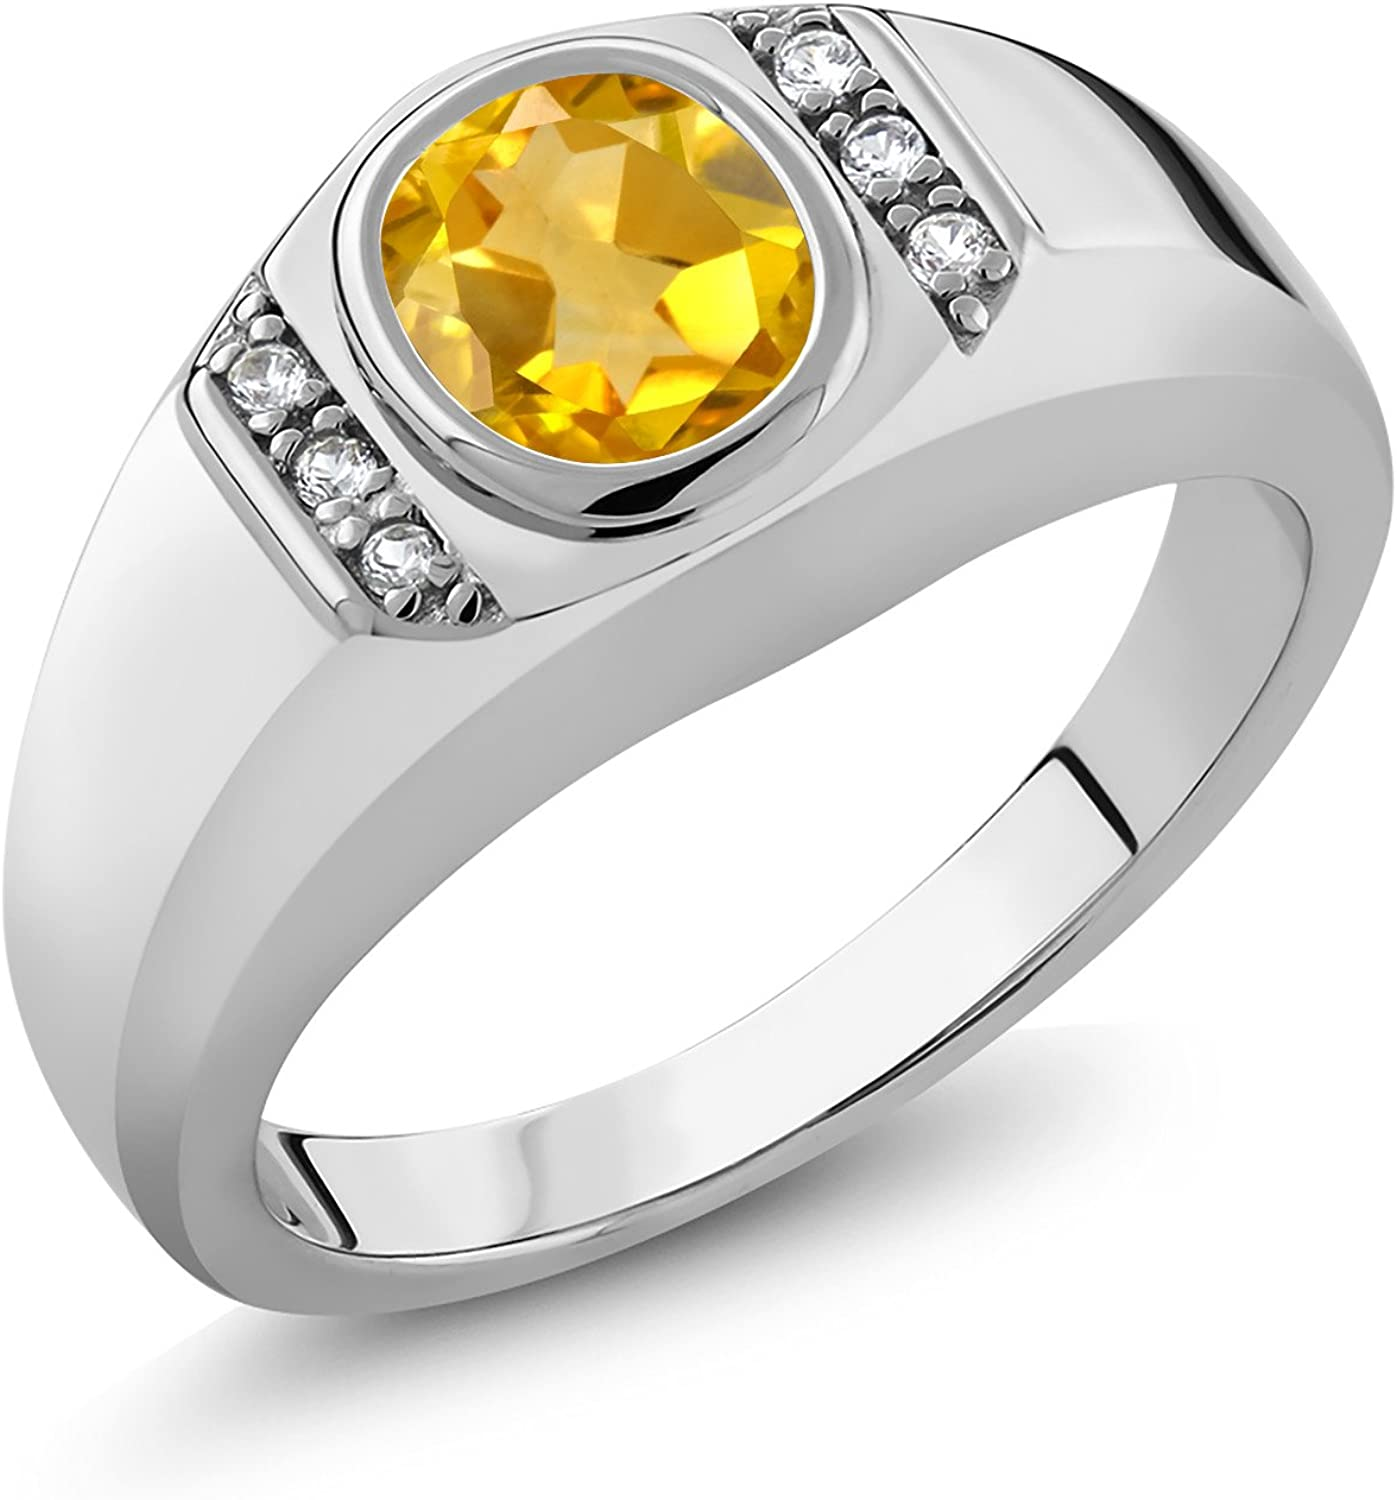 Gem Stone King 925 Sterling Silver Yellow Citrine and Black Diamond Mens Ring 1.53 Cttw Round, Available 7,8,9,10,11,12,13